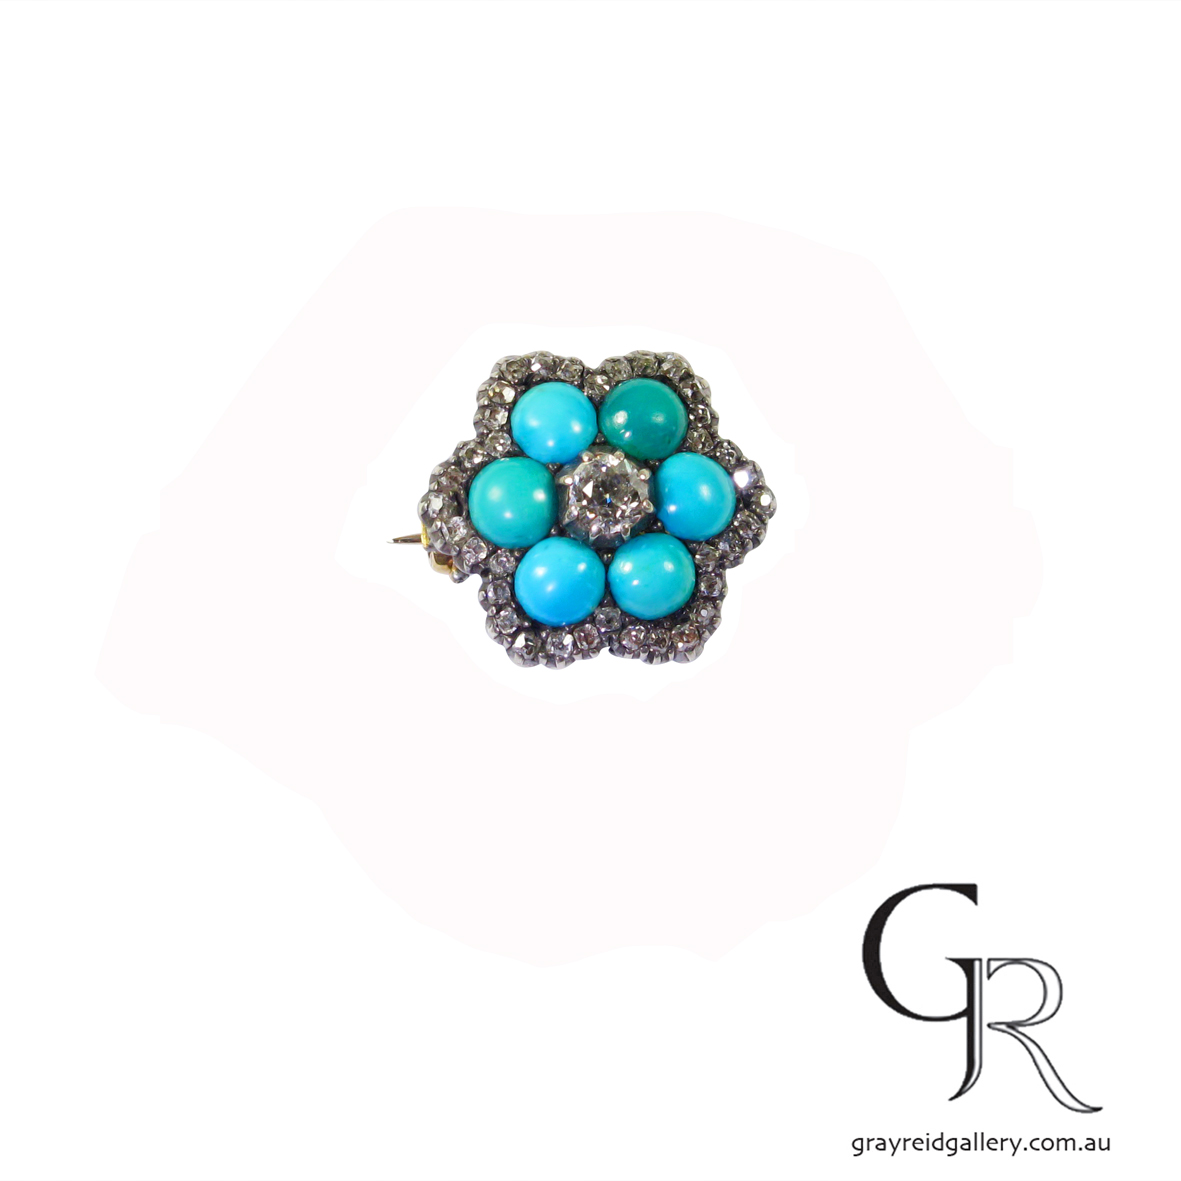 Antique diamond and turquoise brooch Melbourne Gray Reid Gallery32.jpg